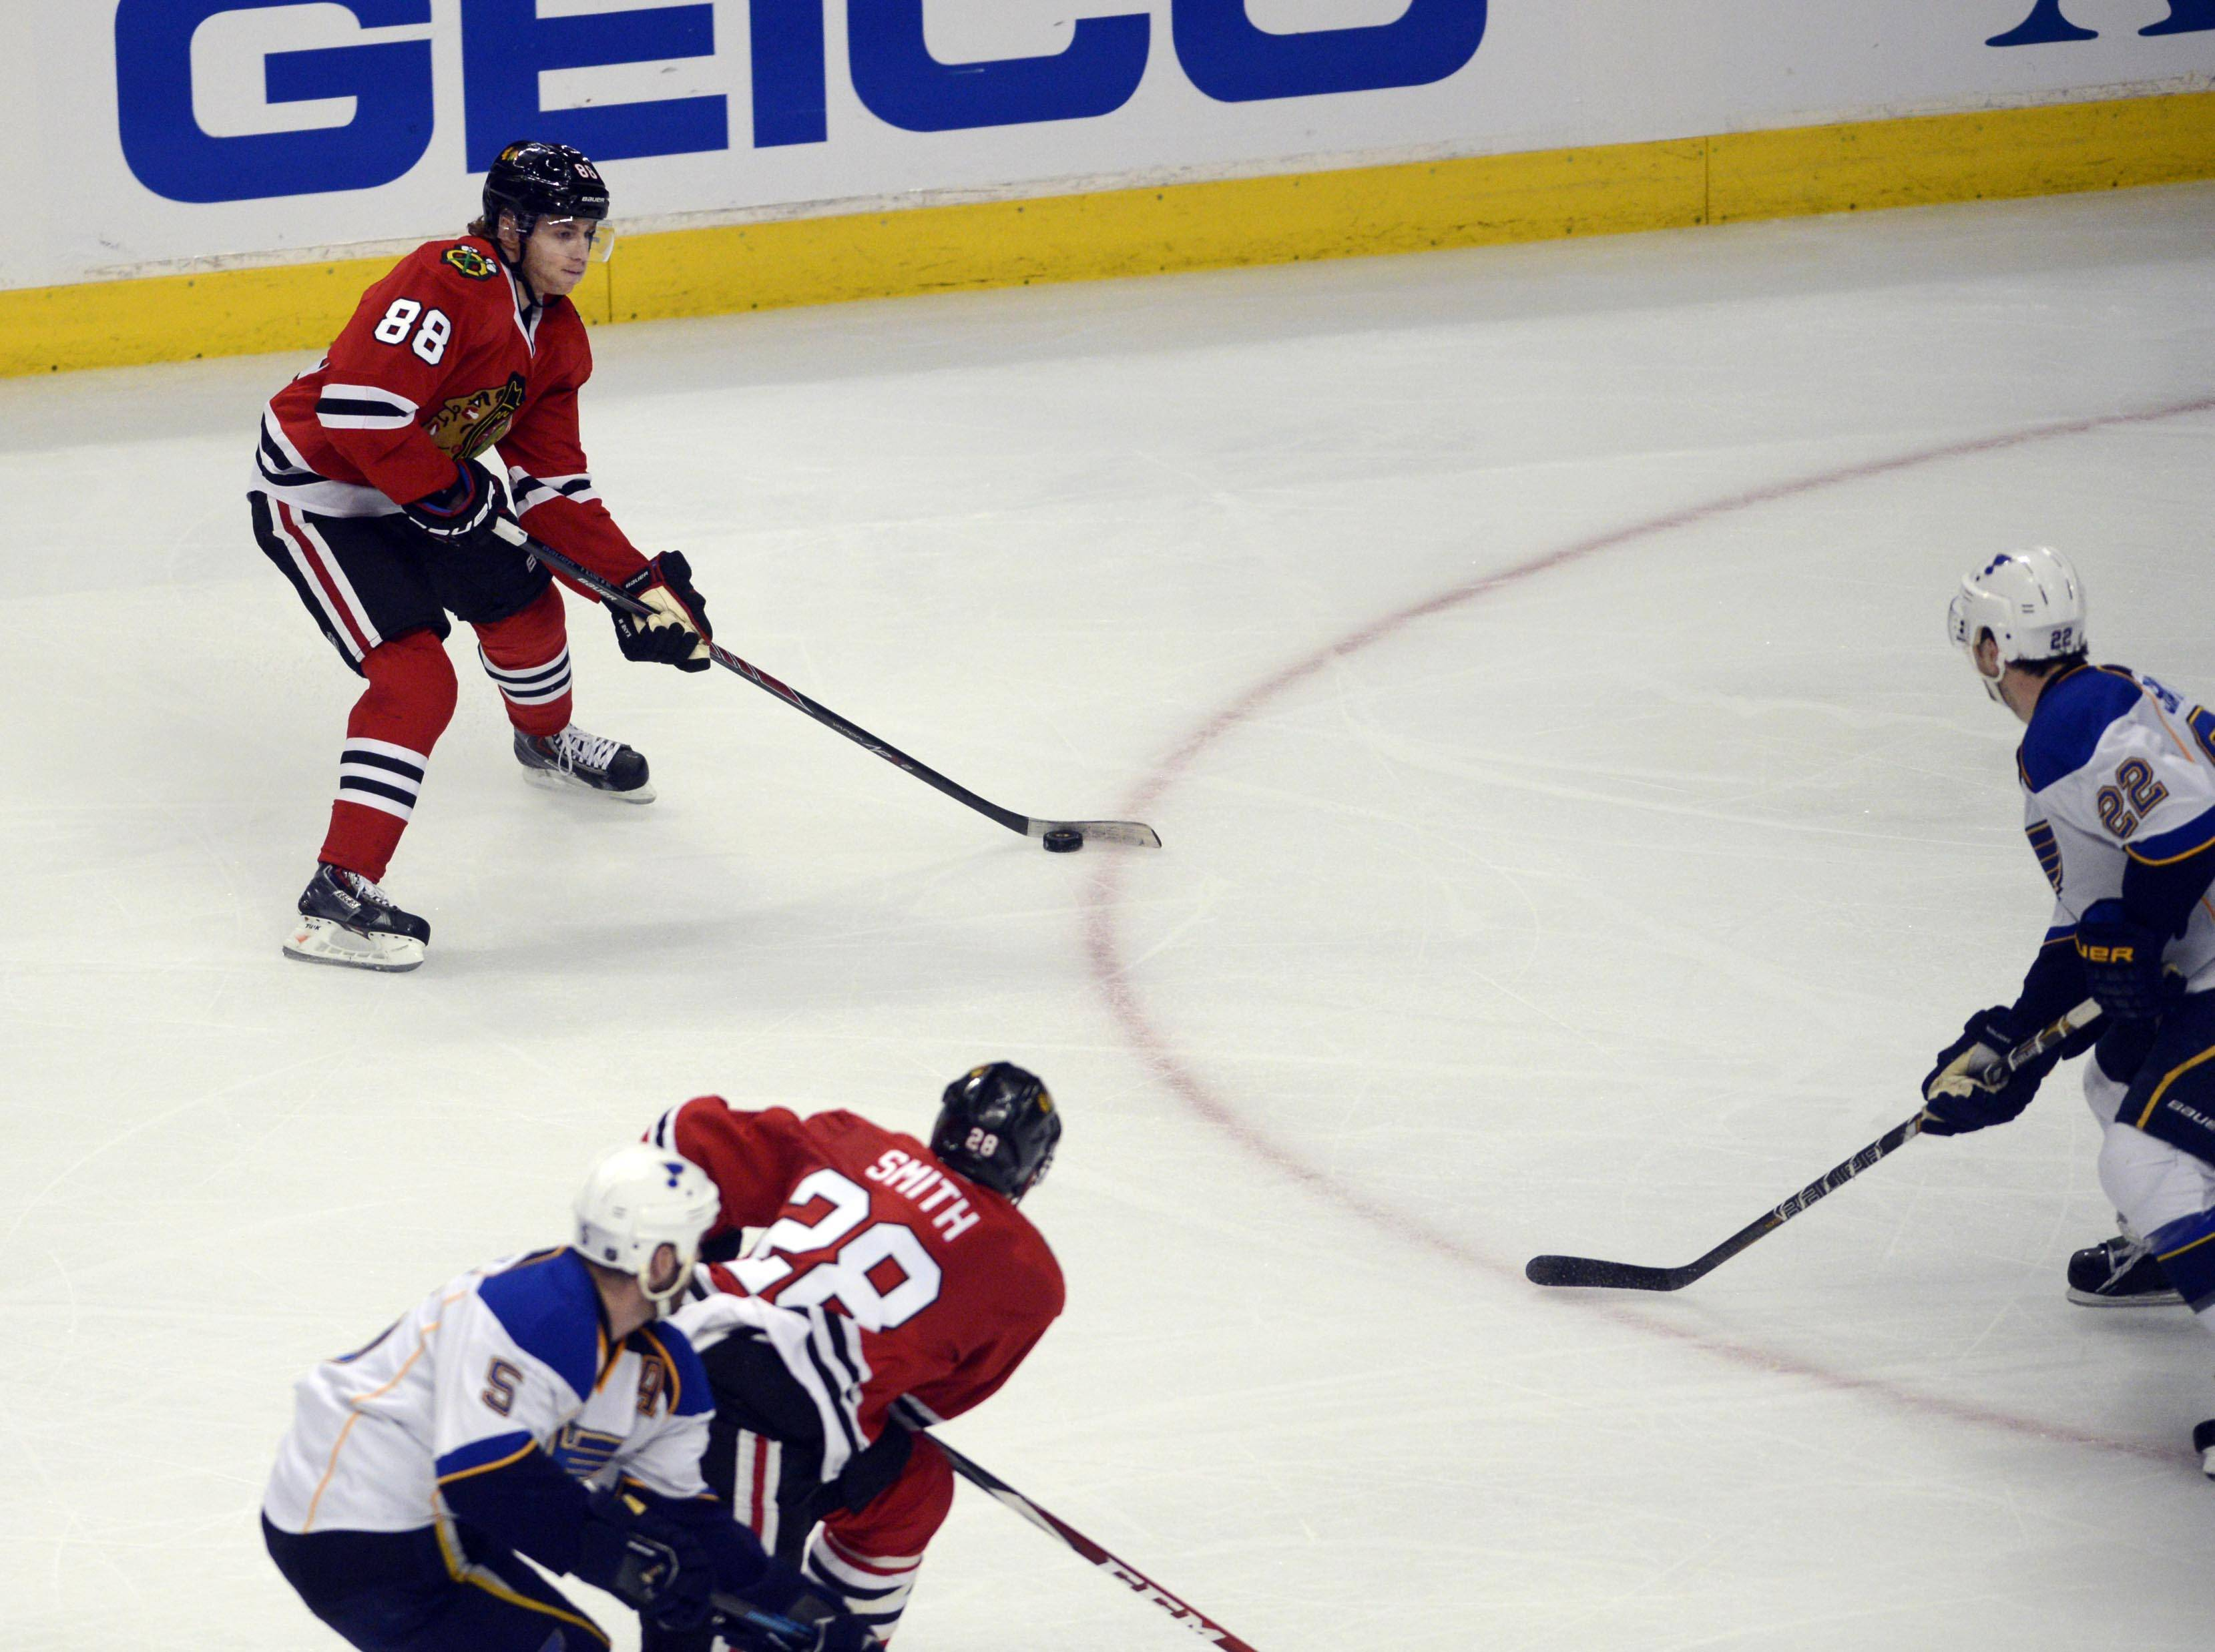 Blackhawks right wing Patrick Kane lines up his game-winning goal against the Blues in overtime of Game 4 late Wednesday at the United Center. Their first-round playoff series returns to St. Louis knotted at 2-2.